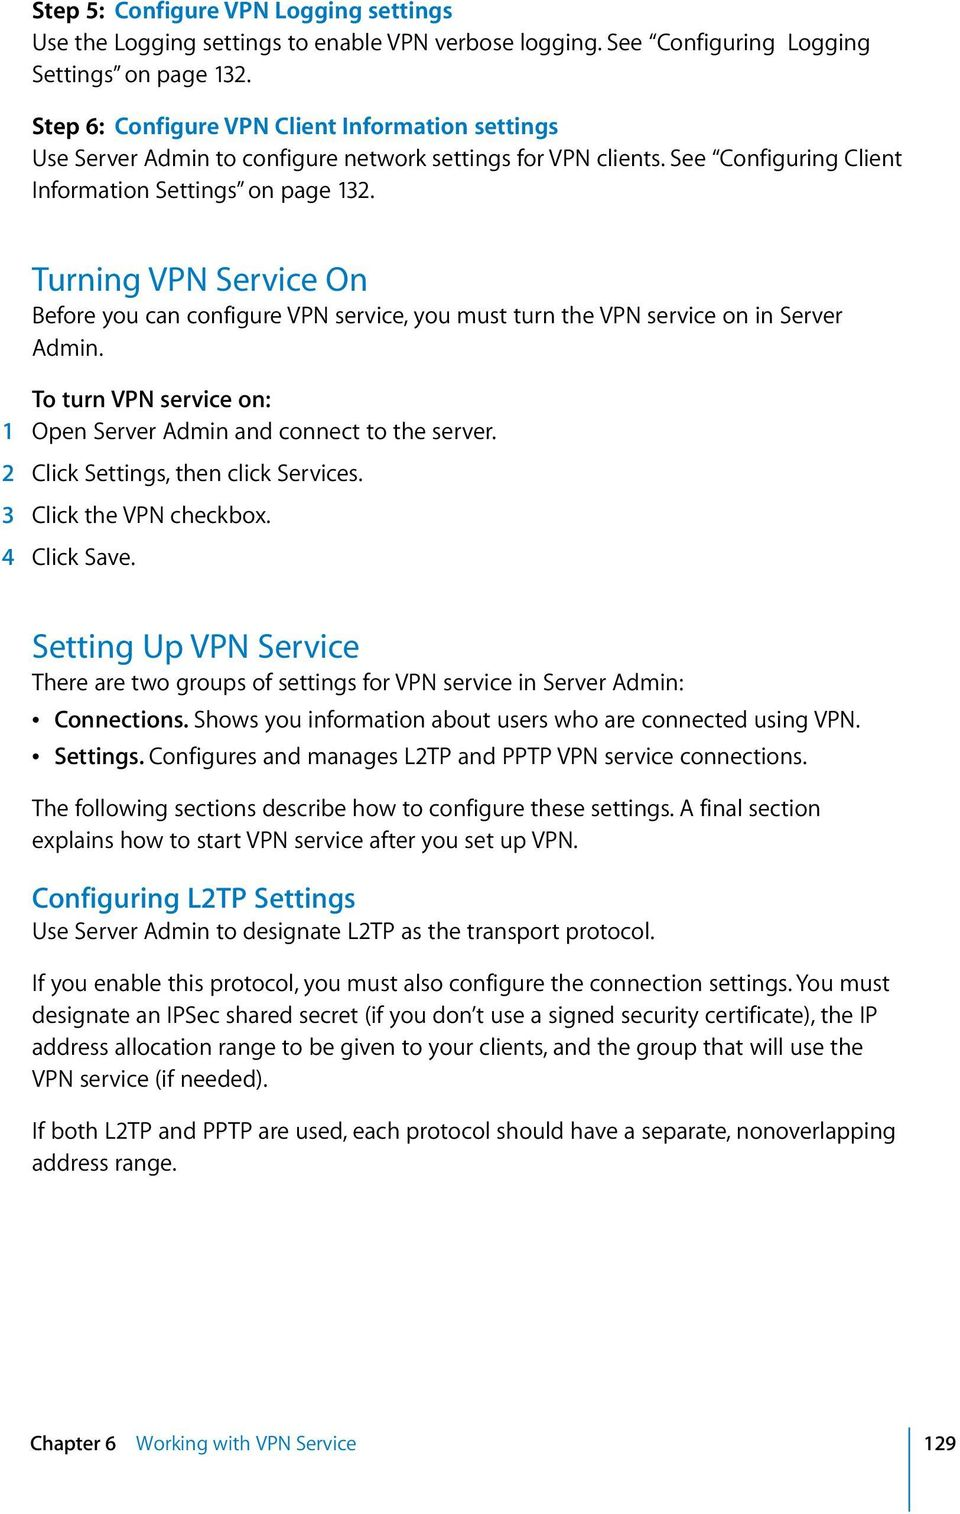 Turning VPN Service On Before you can configure VPN service, you must turn the VPN service on in Server Admin. To turn VPN service on: 2 Click Settings, then click Services. 3 Click the VPN checkbox.